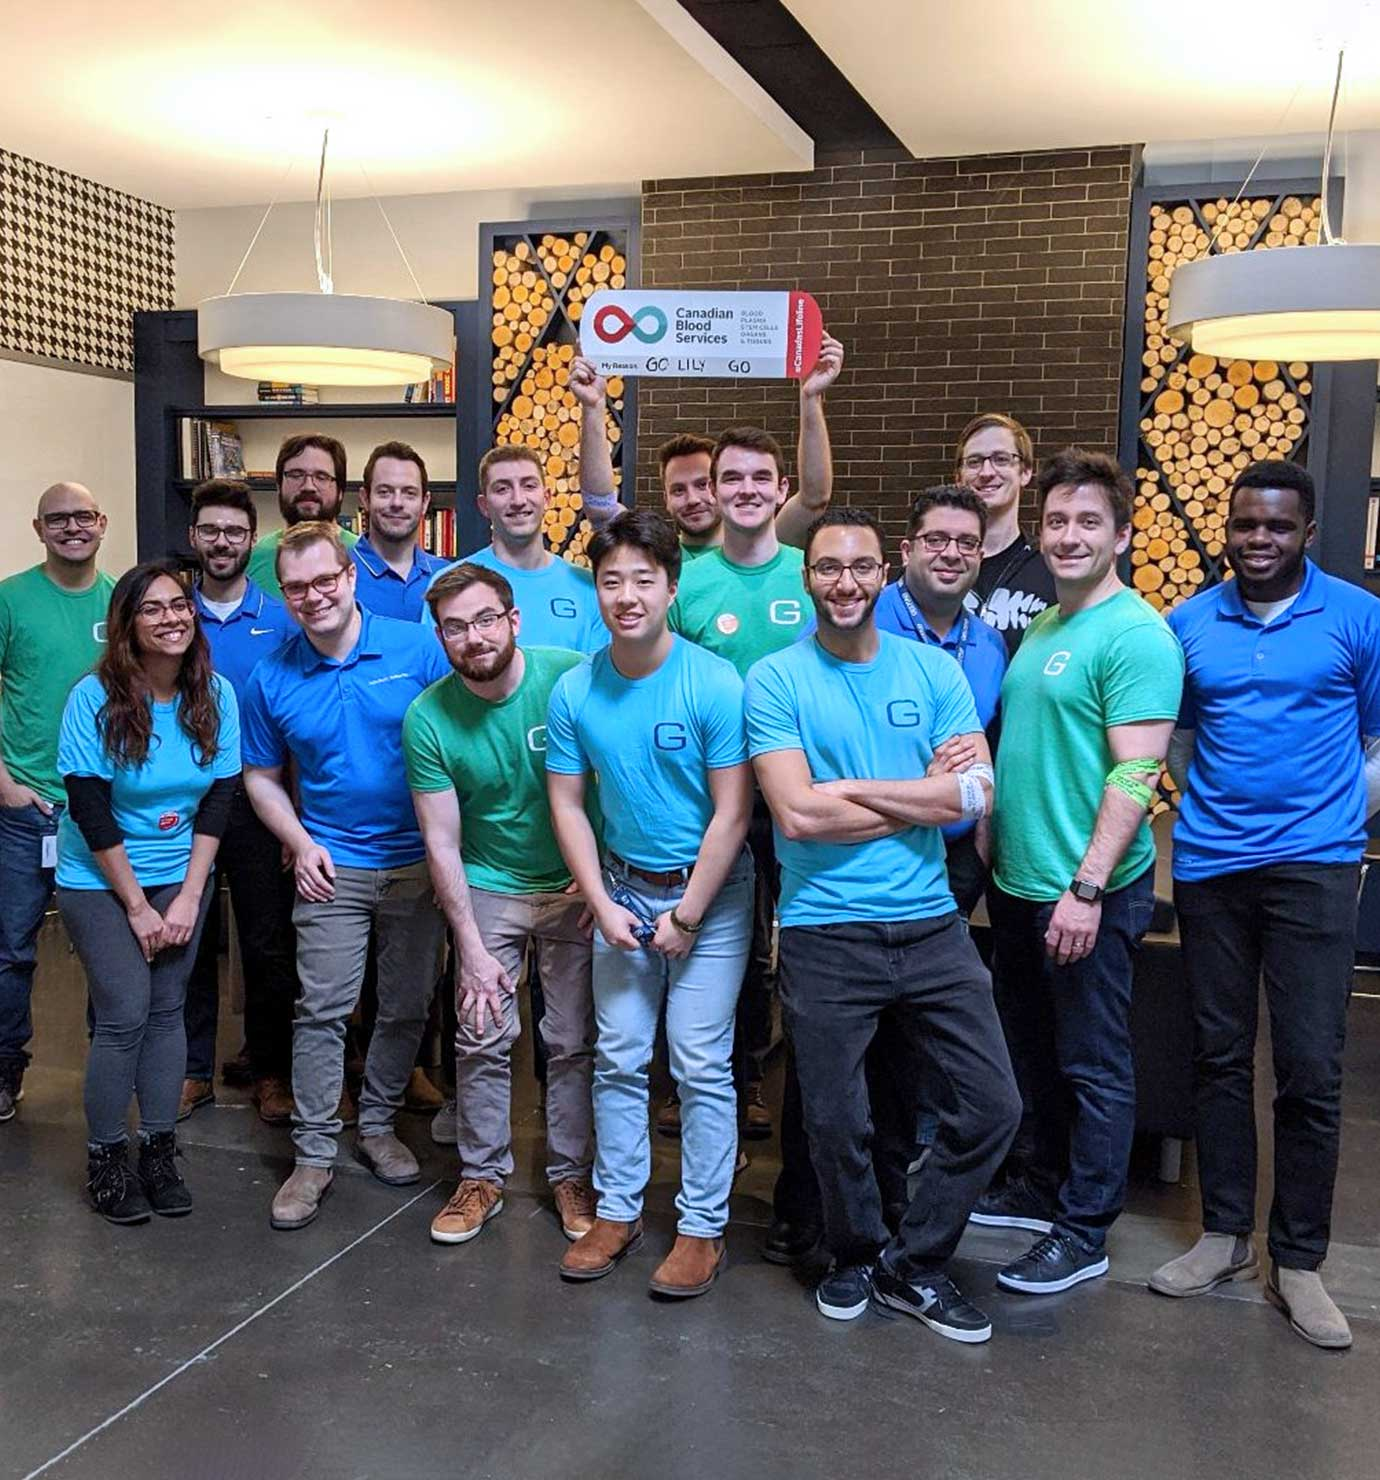 Group of Geotab employees sitting and standing in a truck loading dock